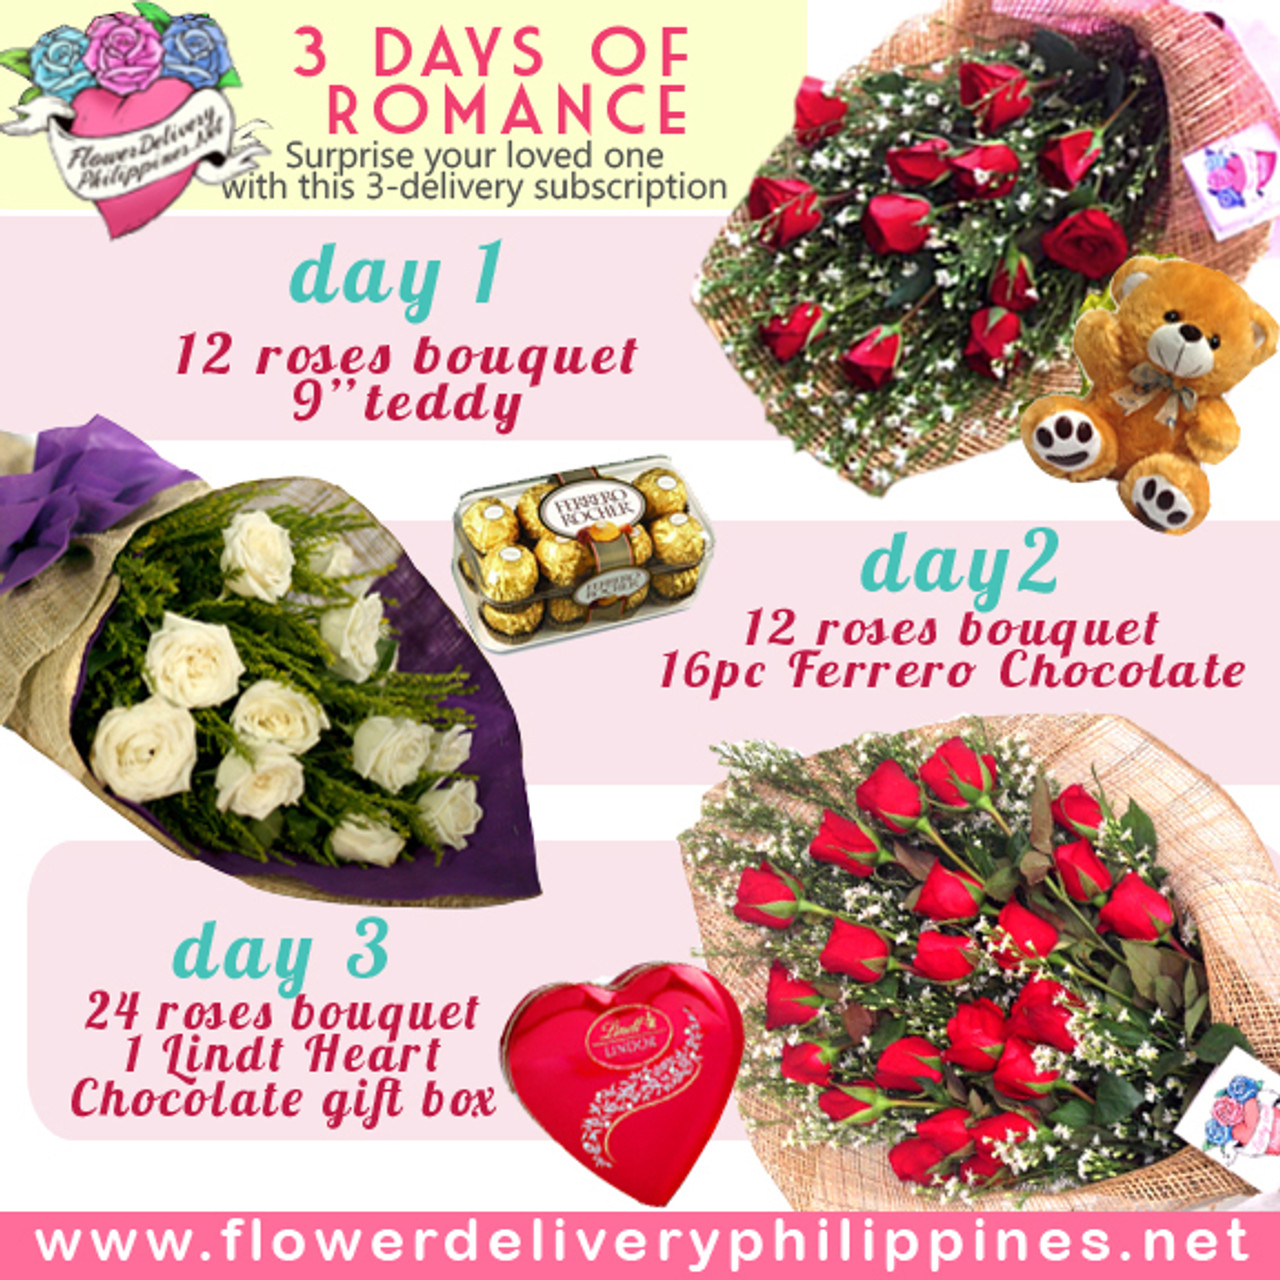 Three days of romance Flowers & Gifts Subscription